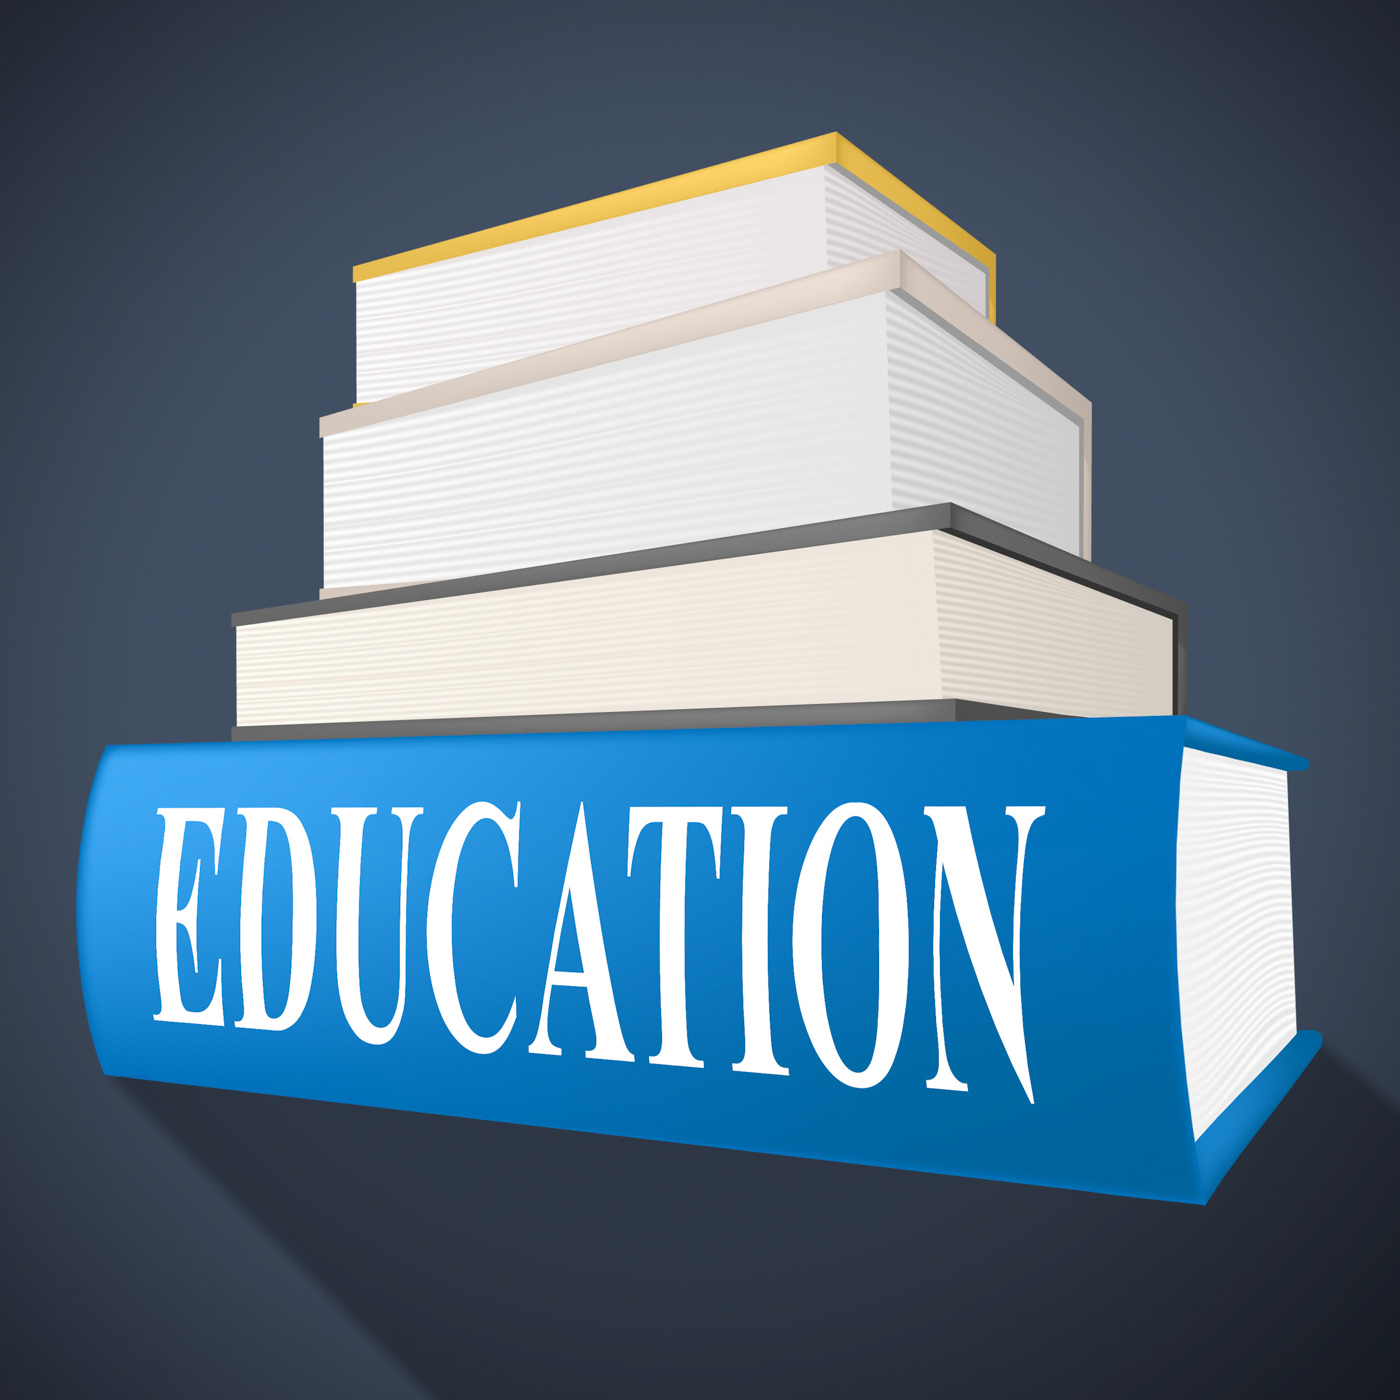 Education Book Represents Non-Fiction School And Educated, Book, Non-fiction, Tutoring, Training, HQ Photo